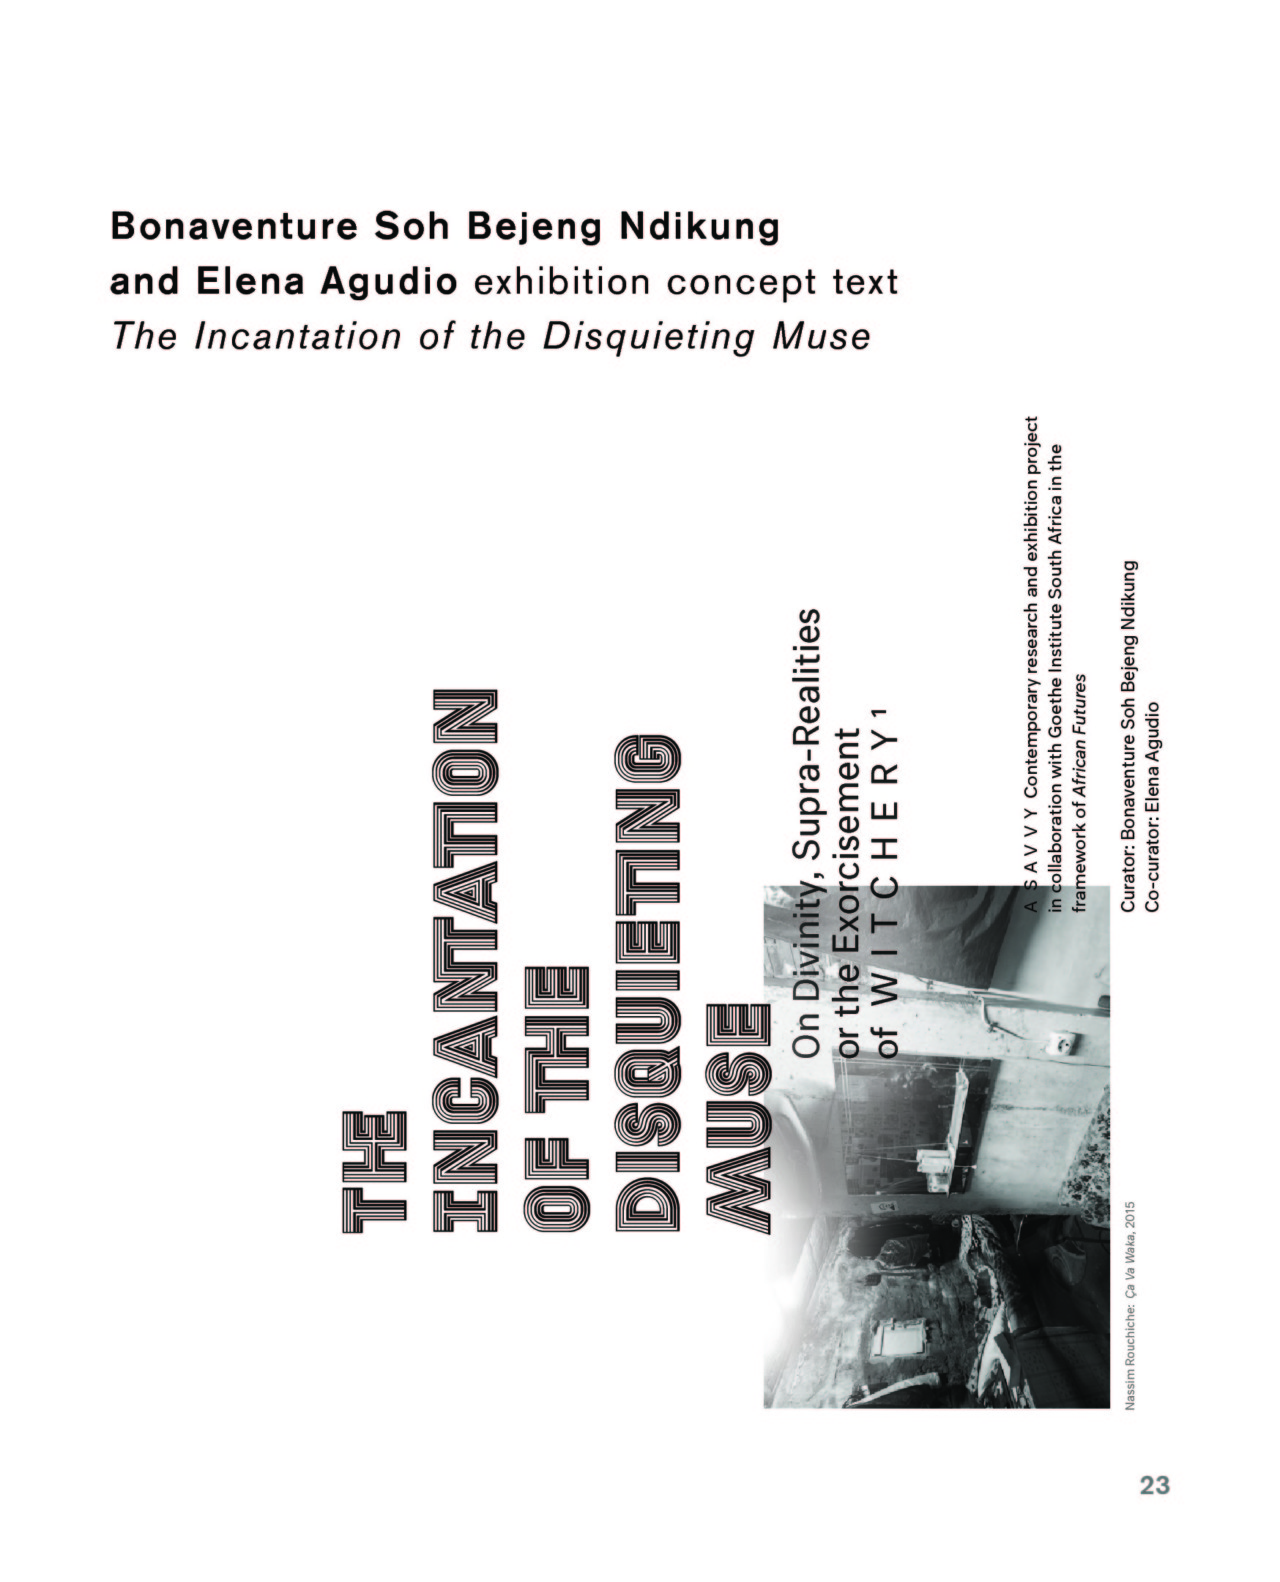 Membrane d14 SESSIONS #6 with Bonventure Ndikung, Curatorial Advisor d14